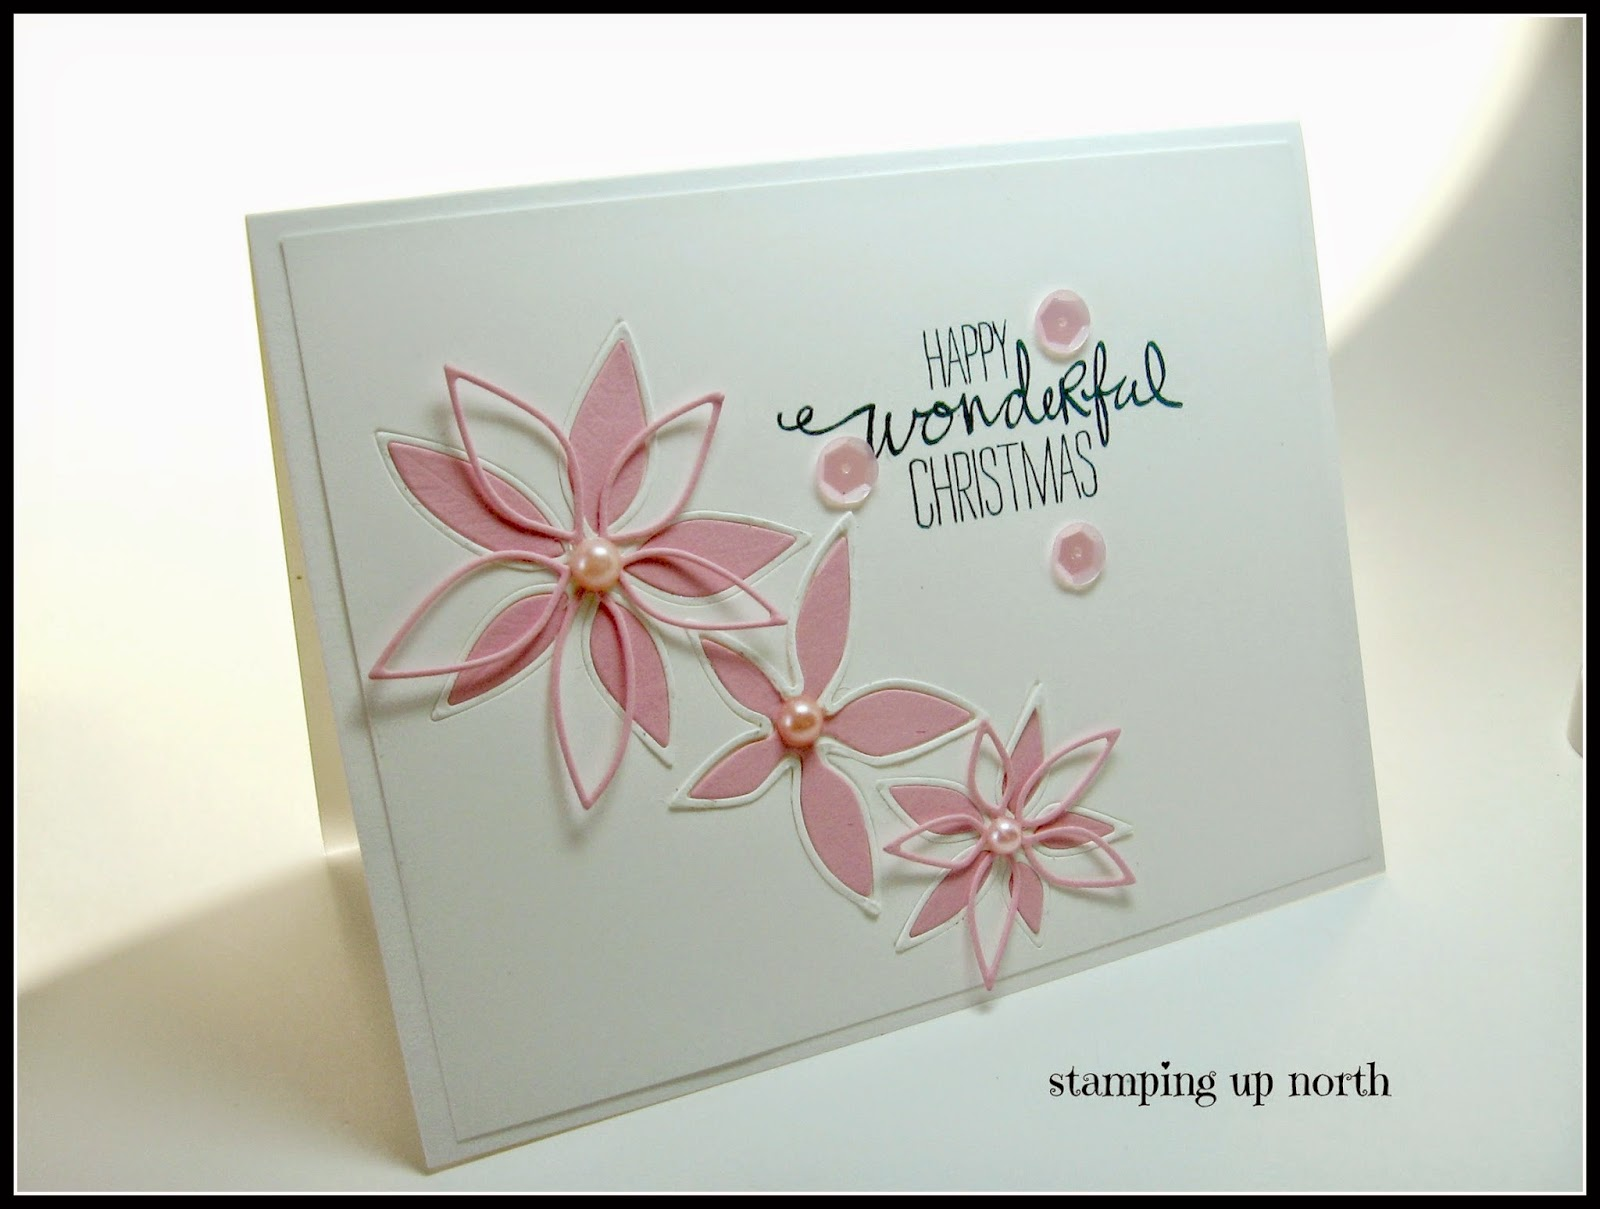 stamping up north with laurie memory box christmas card